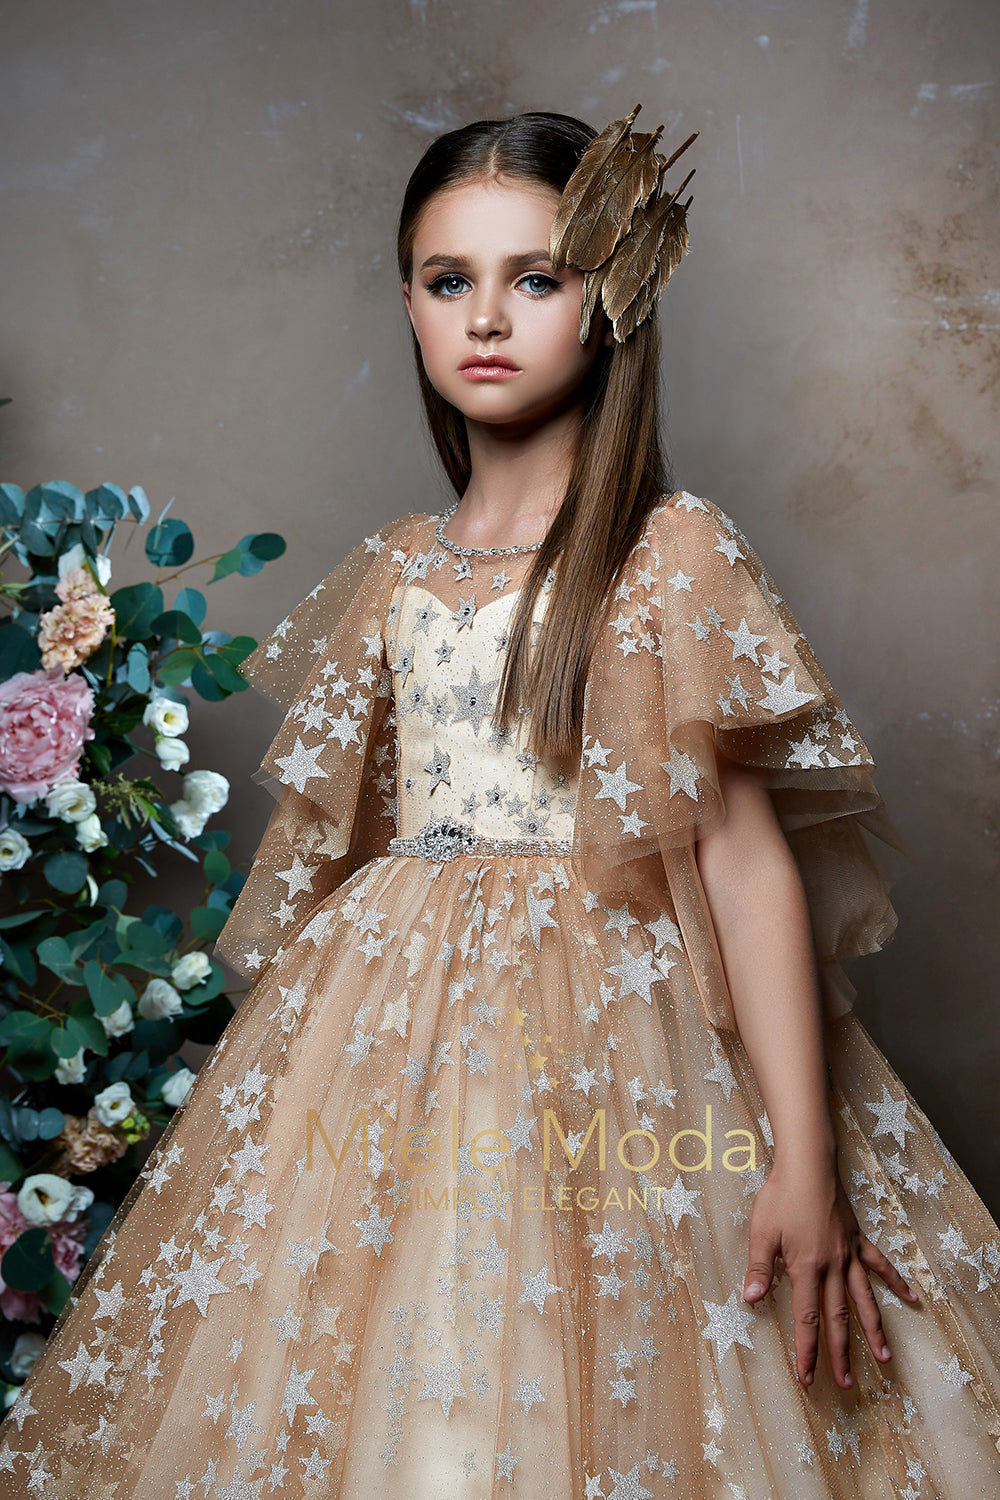 Pretty girl wearing Stellara Sparkly Stars Flower Girl Dress-by Miele Moda Boutique